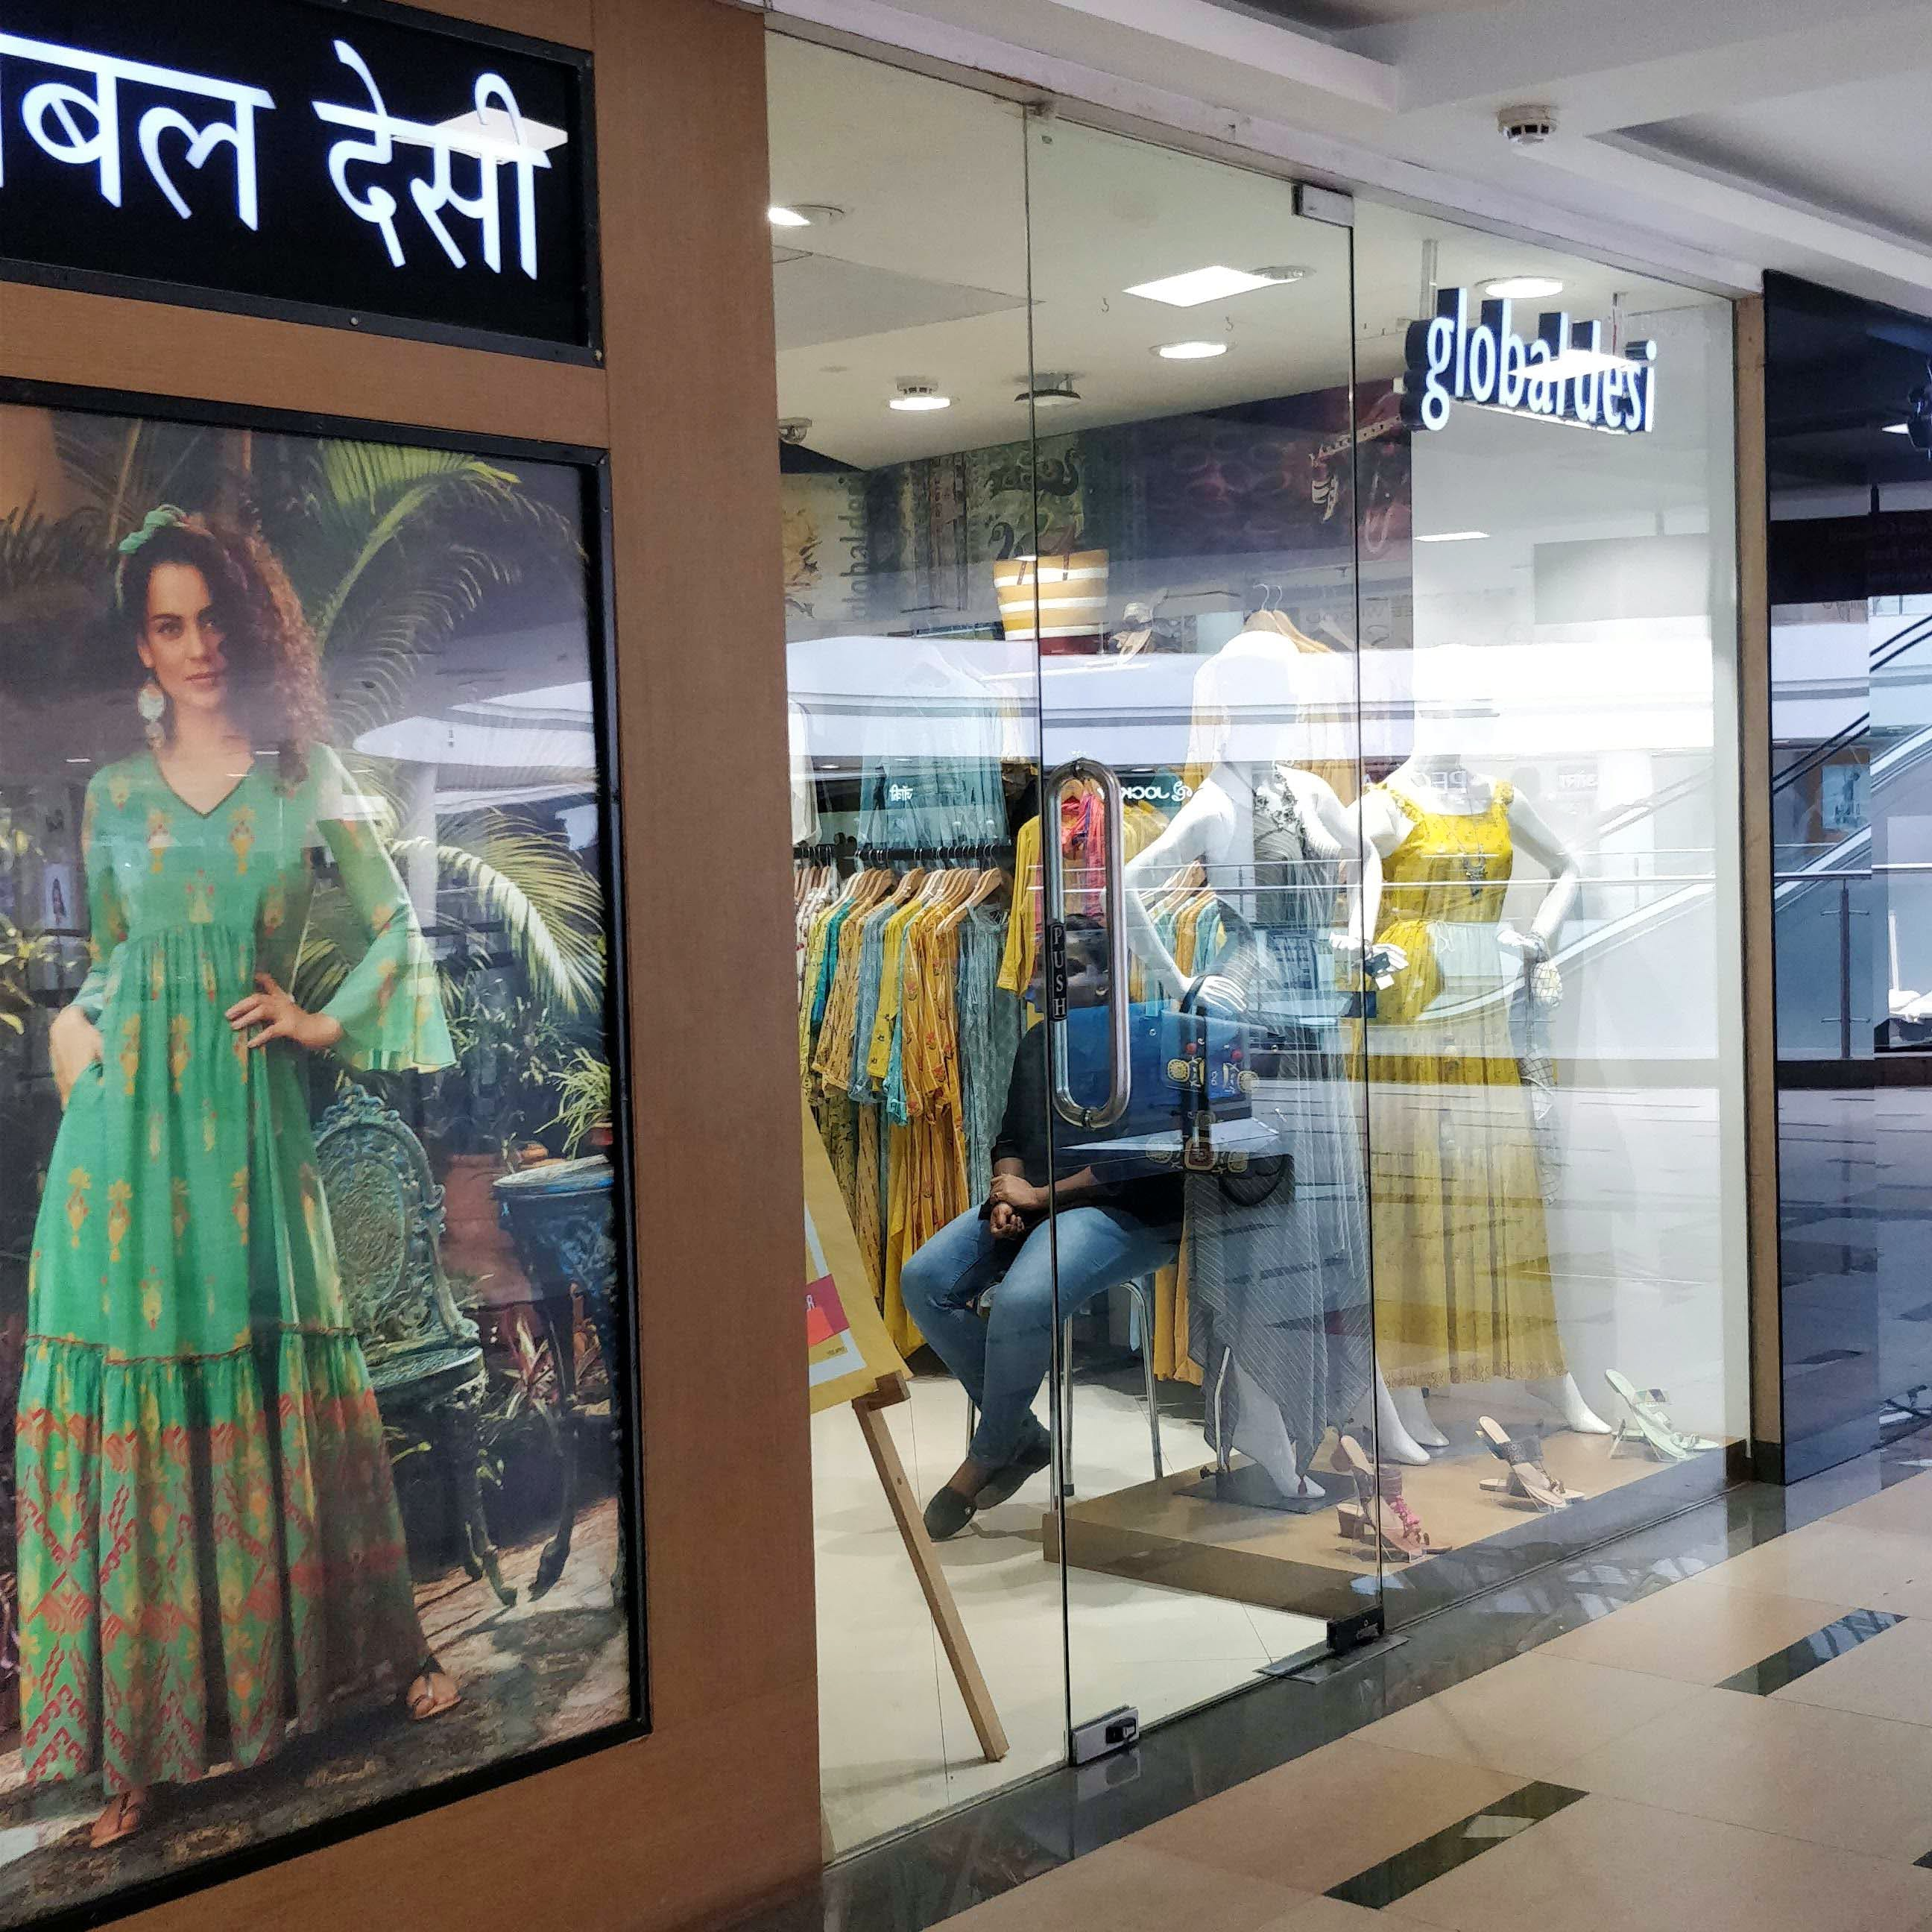 Building,Display window,Shopping mall,Retail,Glass,Outlet store,Advertising,Boutique,Interior design,Metal